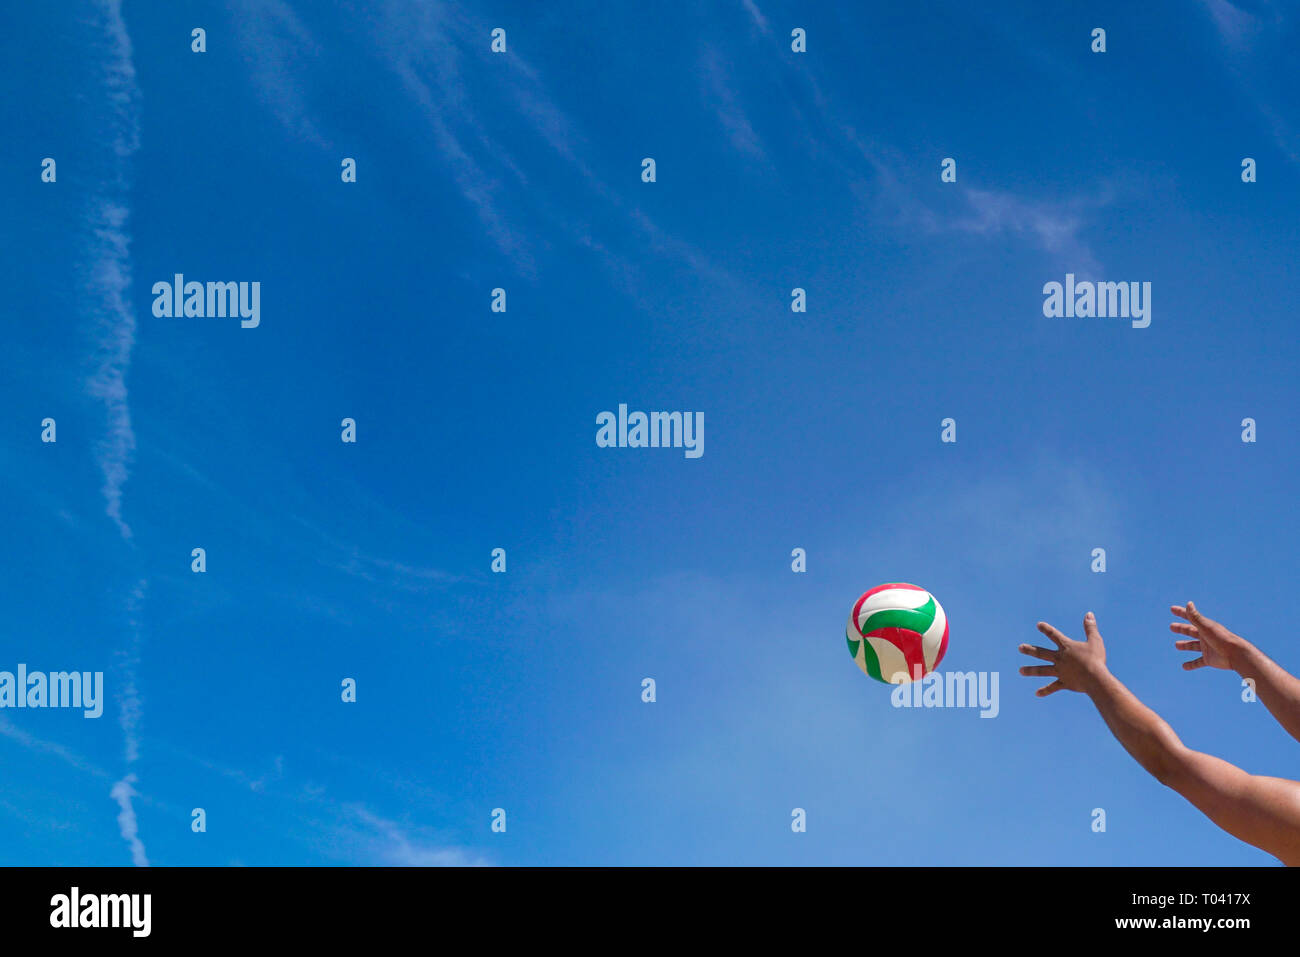 Hands stretch out to catch a ball with sky background, with copy space - Stock Image